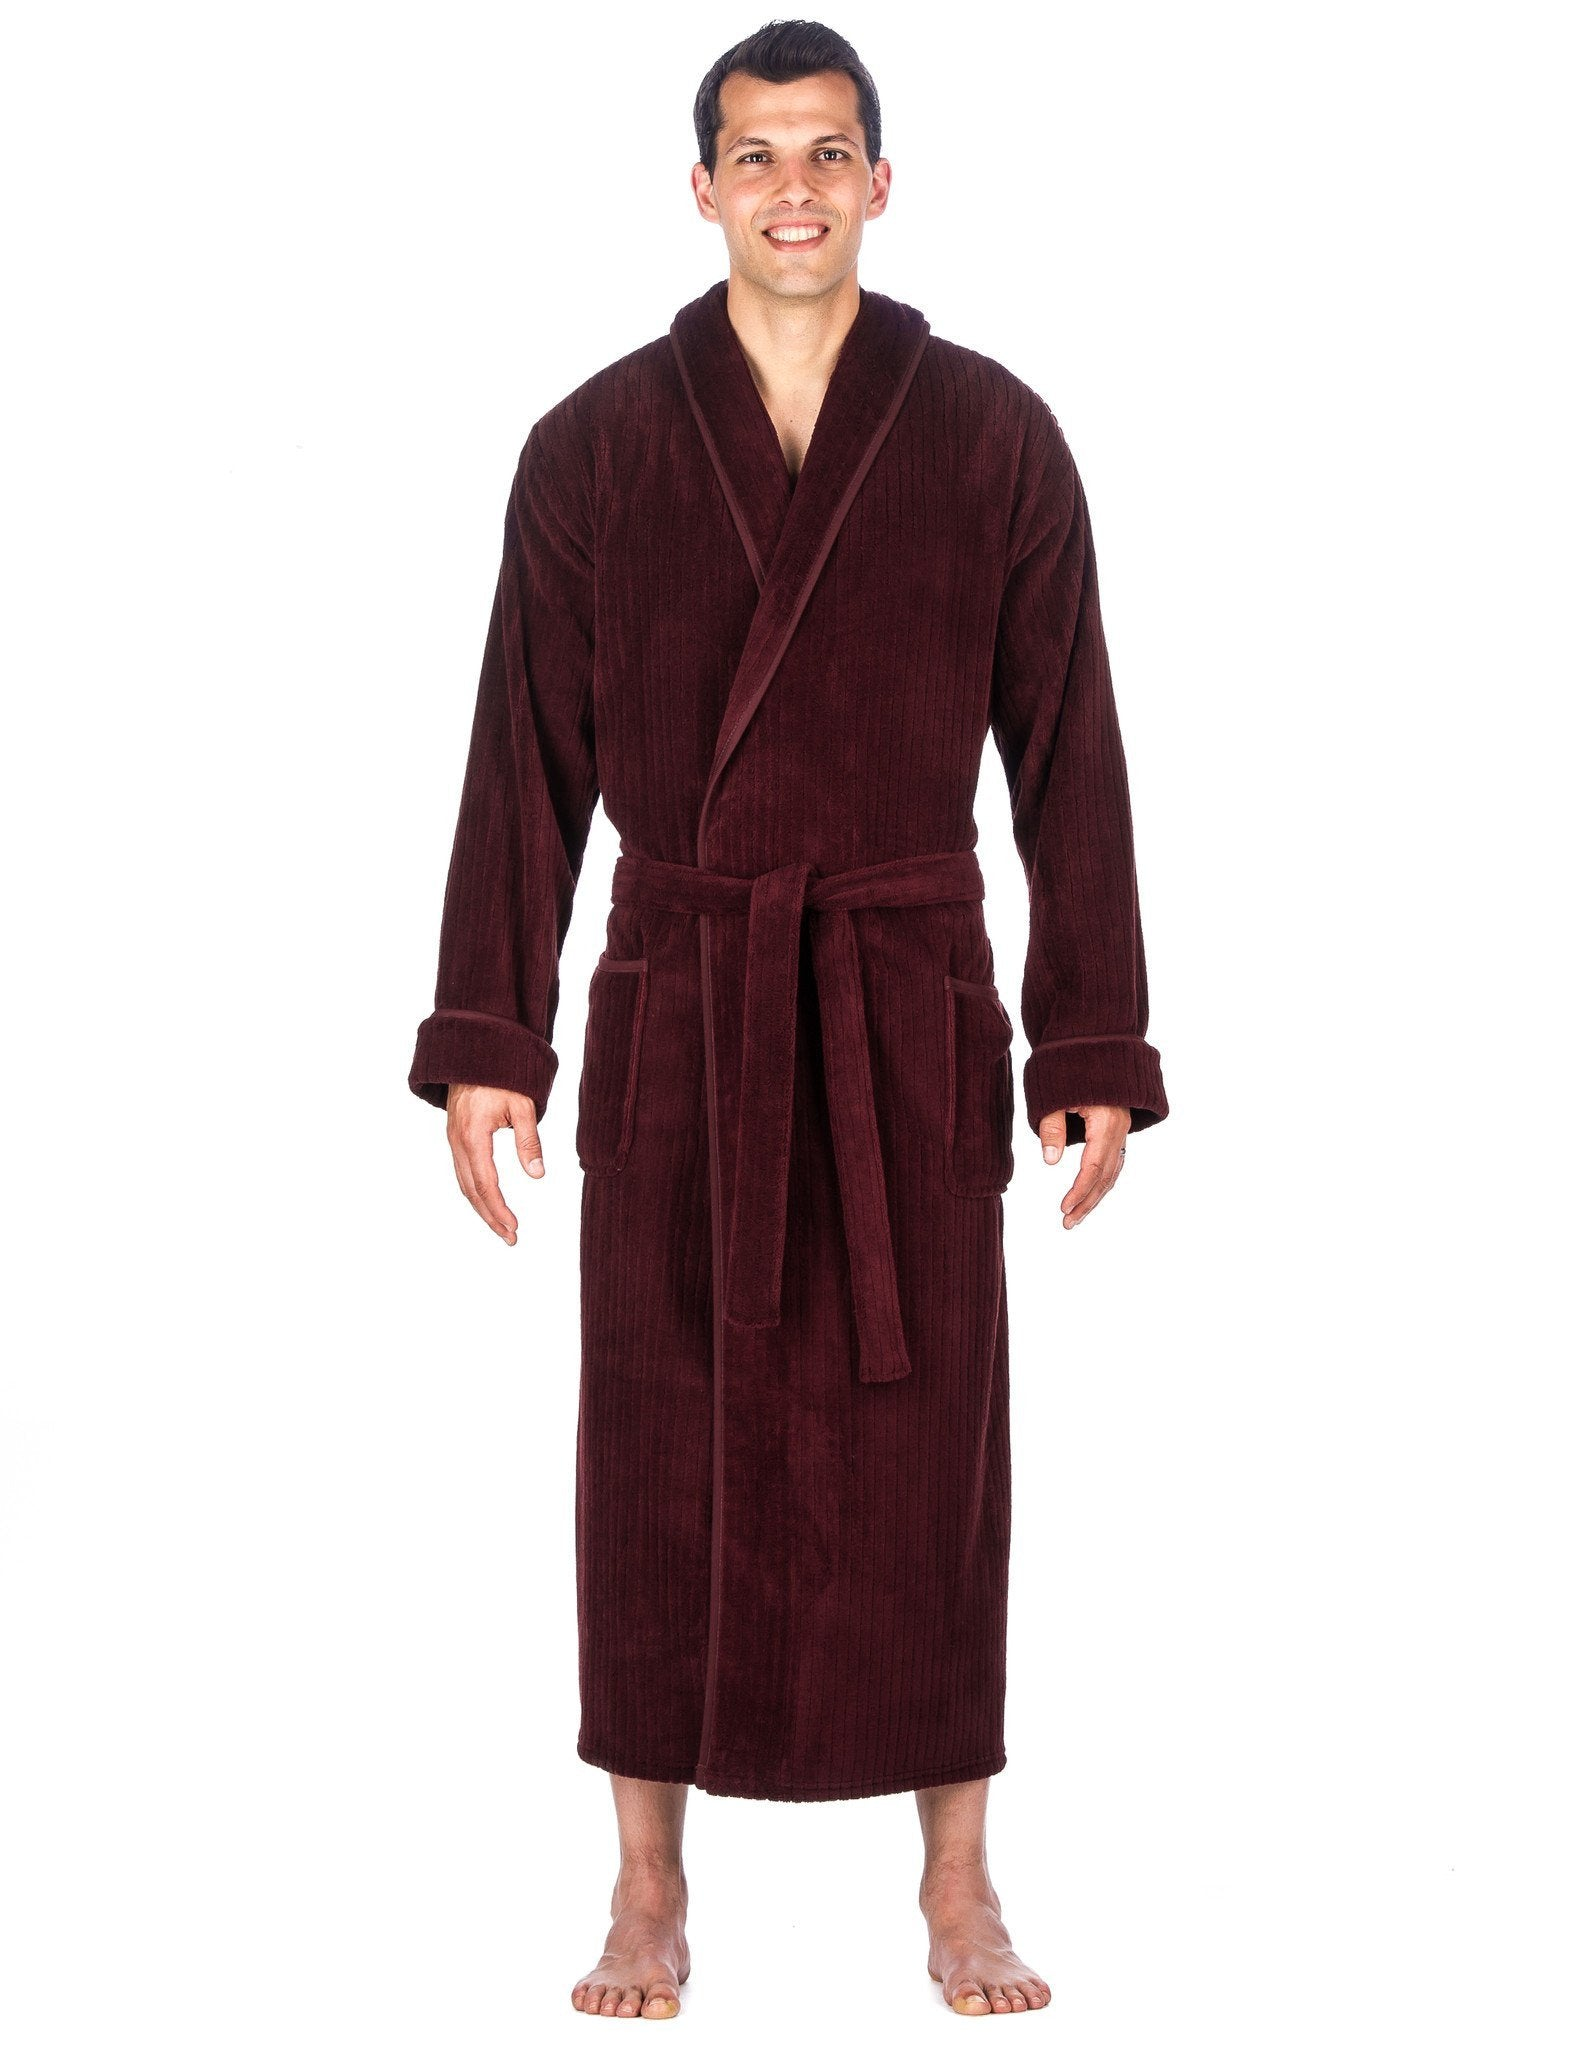 Men's Premium Coral Fleece Long Hooded Plush Spa/Bath Robe - Fig